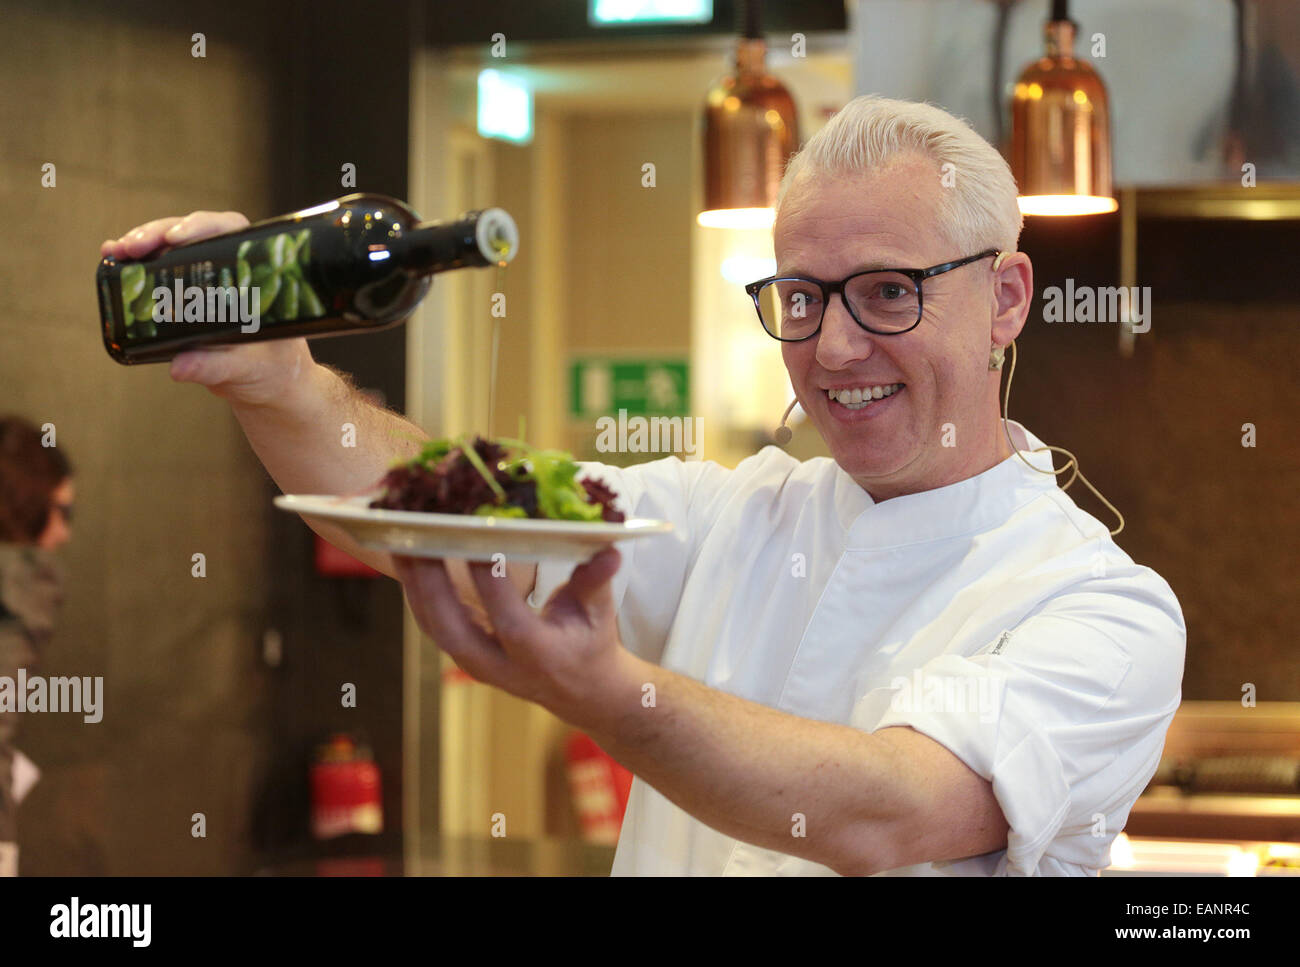 Rudolph van Veen, Dutch TV chef and cookbook author, best